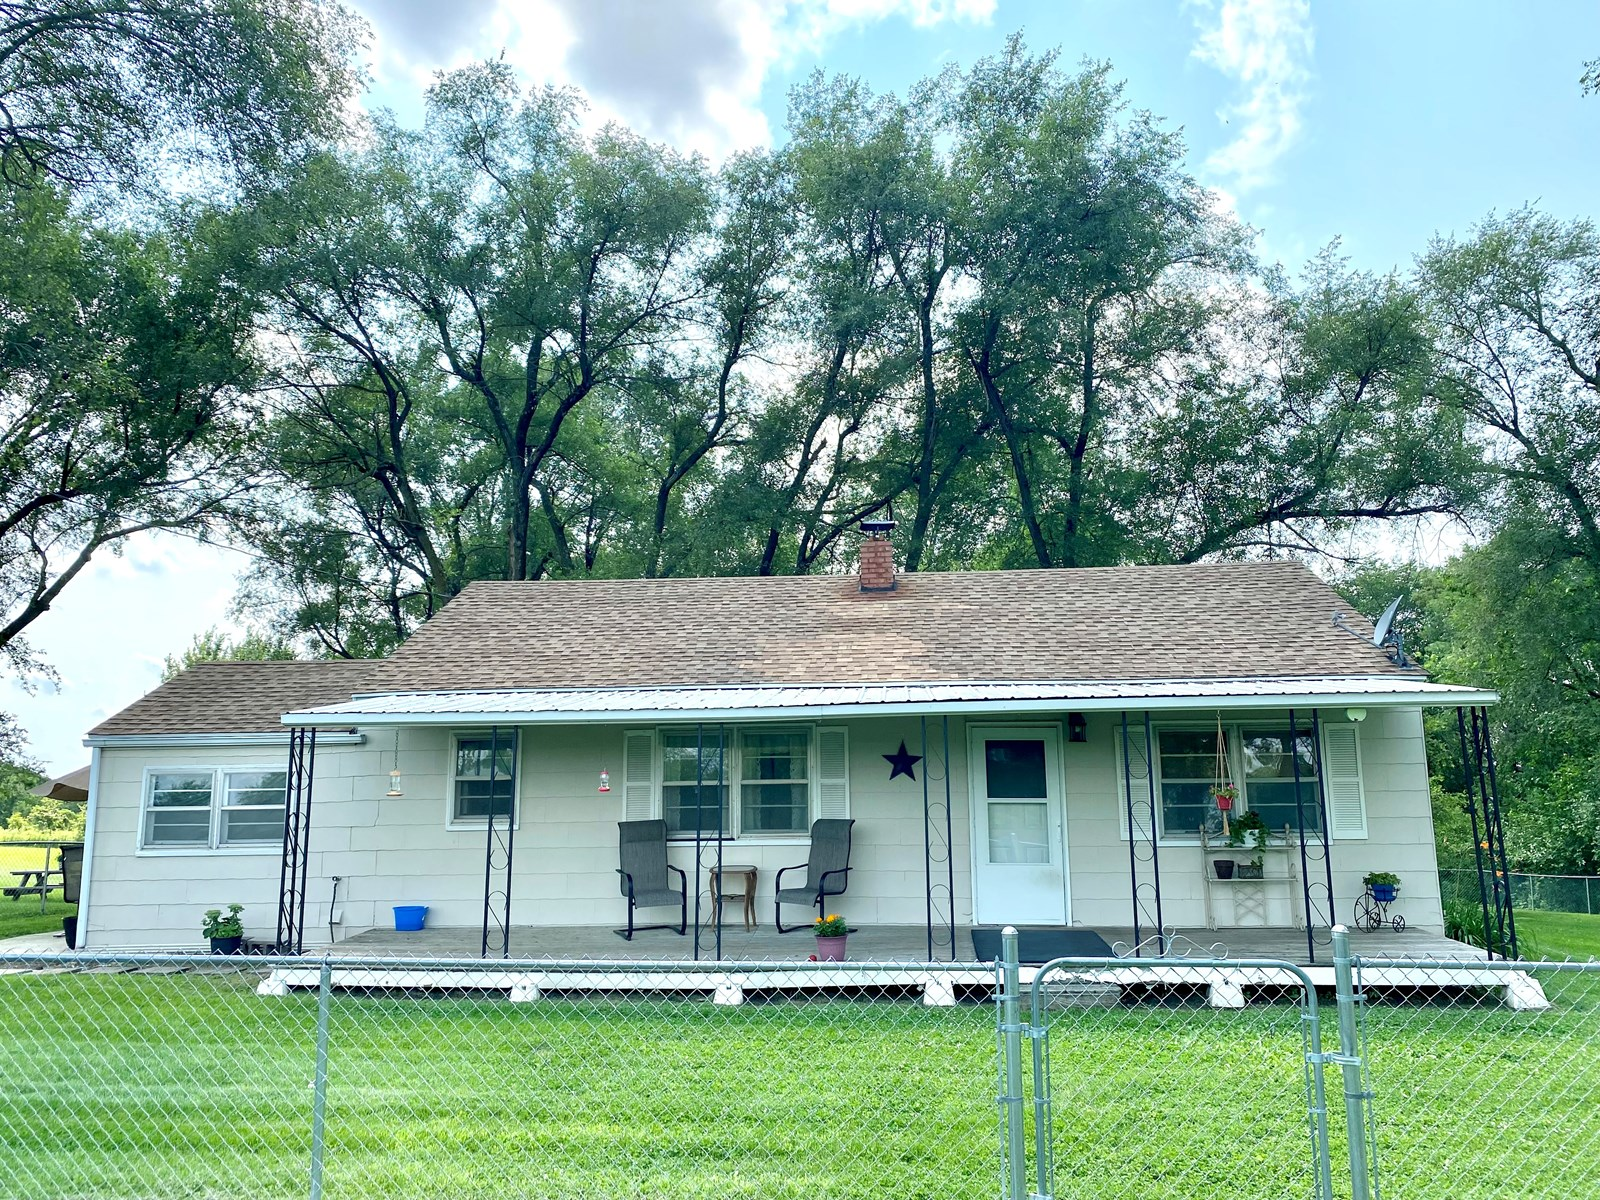 For Sale Country Home/Hobby Farm in Mercer County